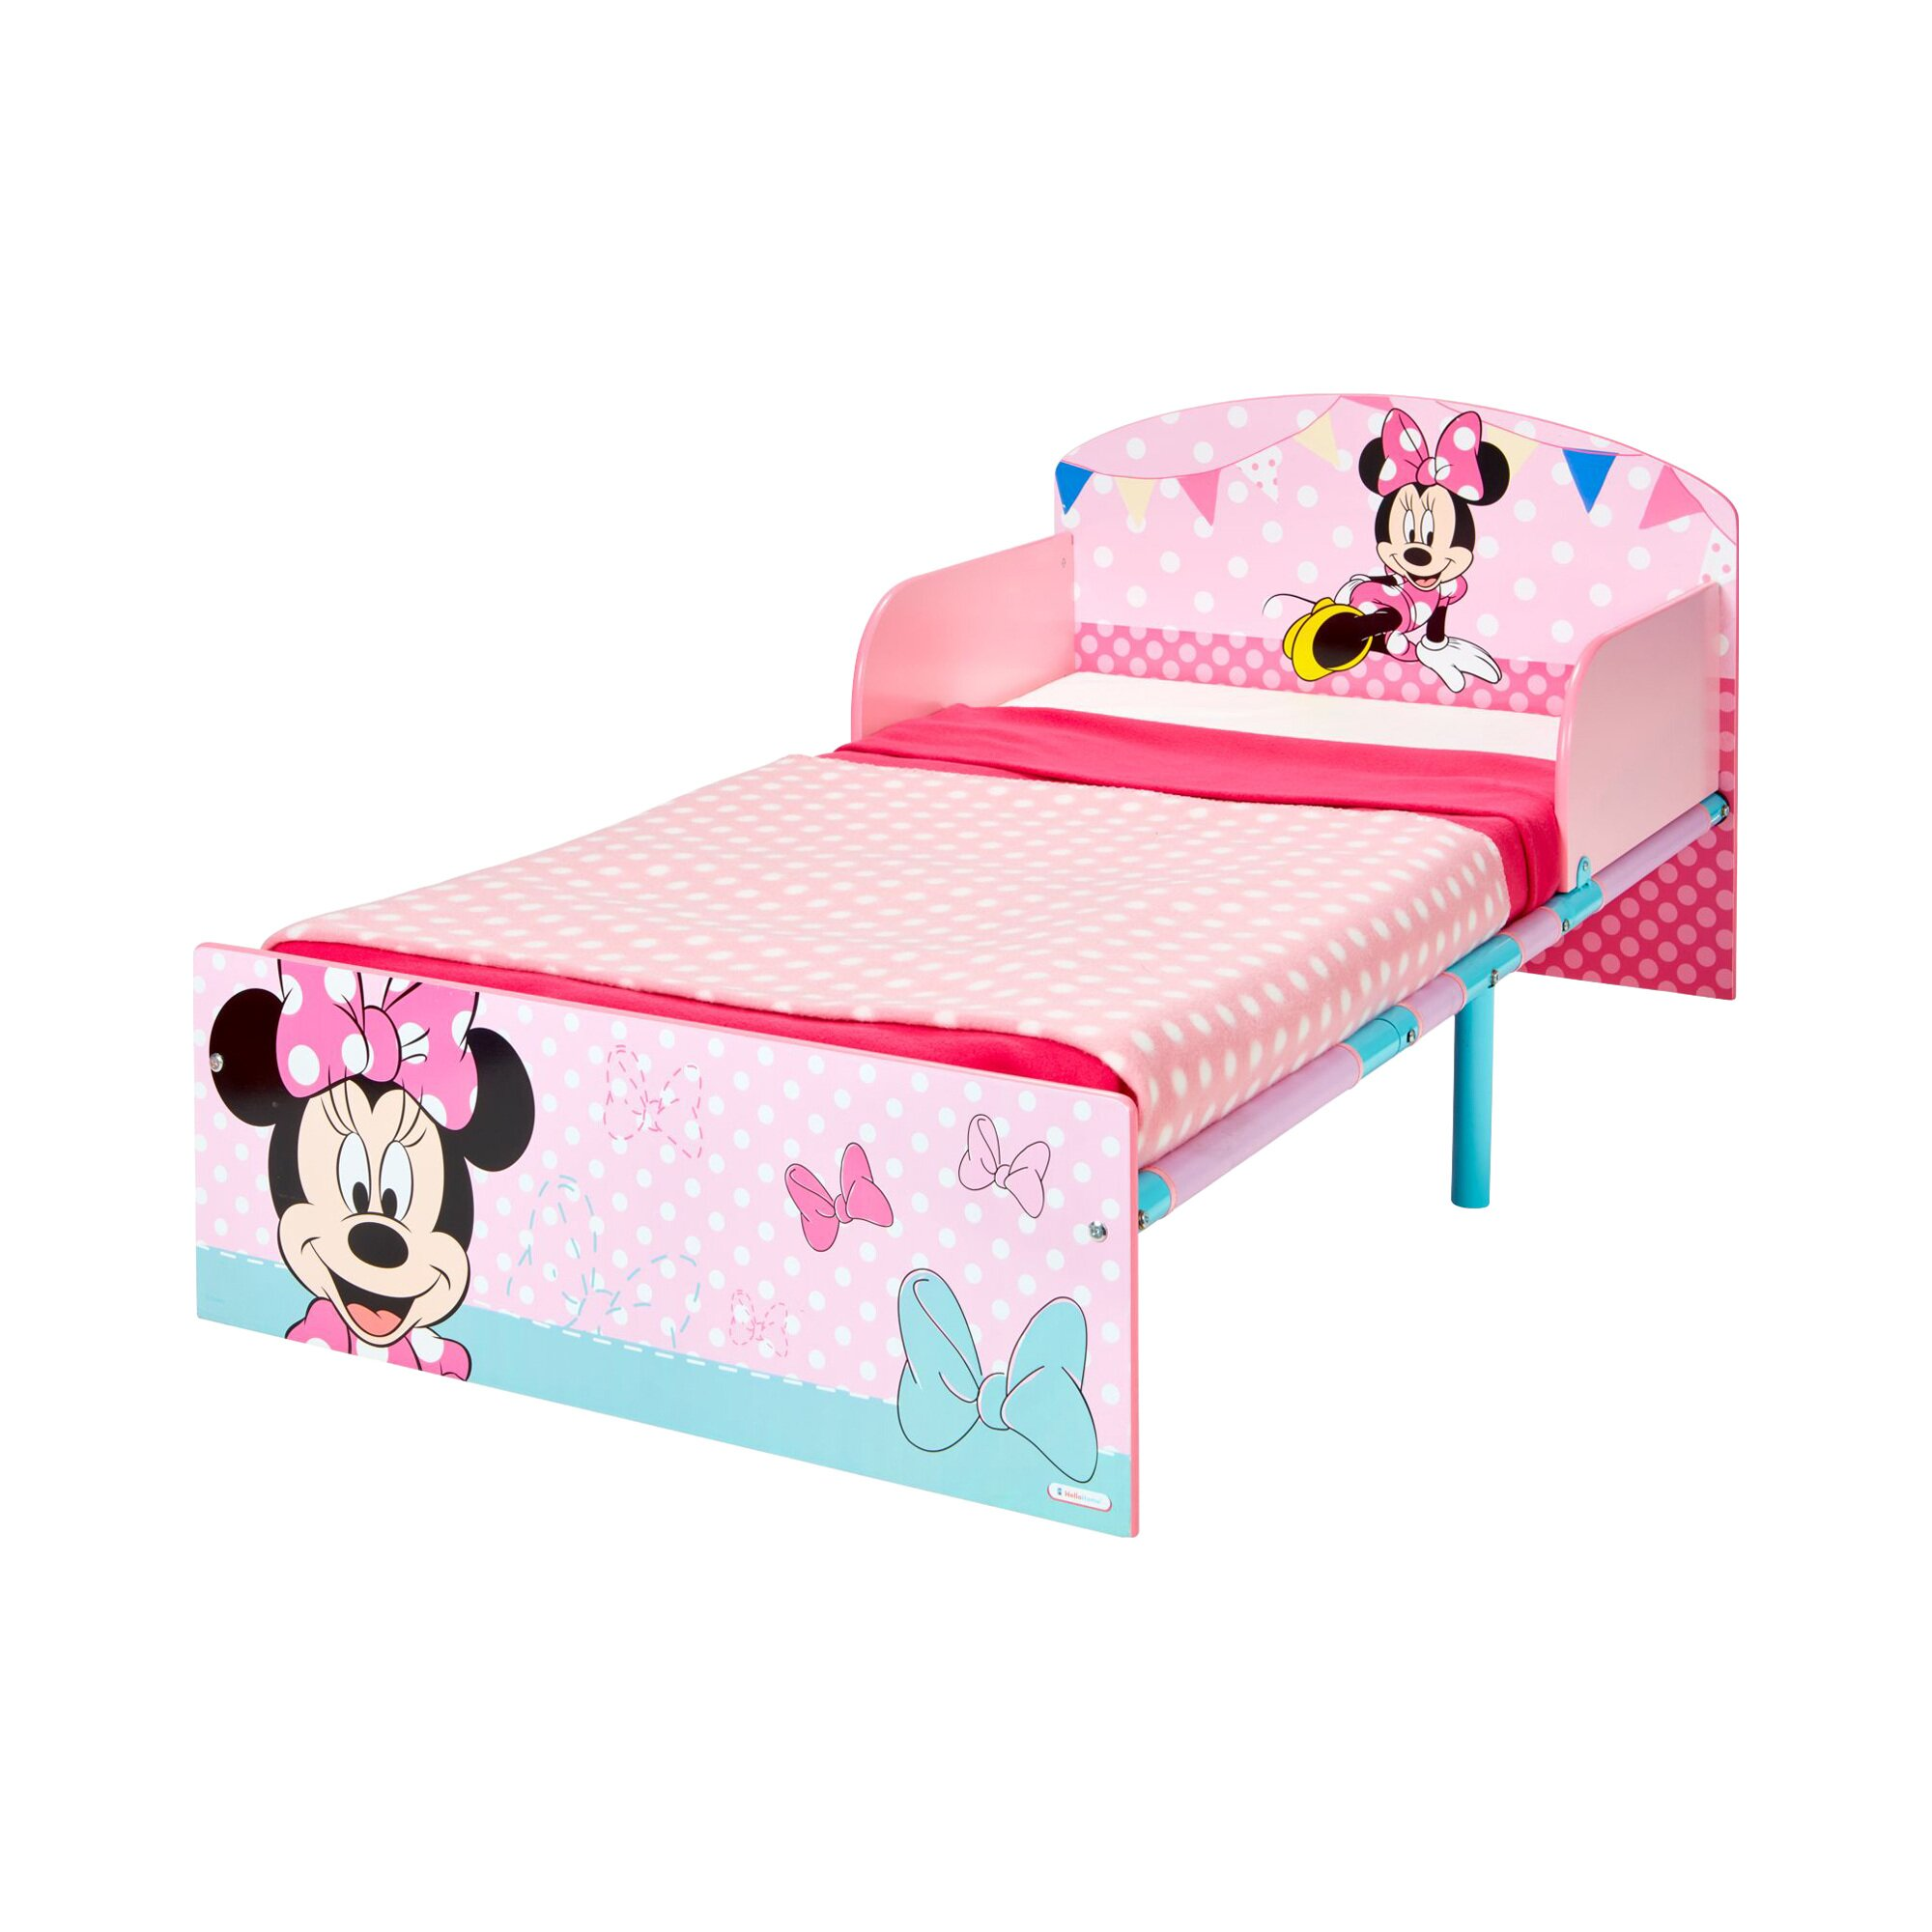 Minnie Mouse Kinderbett Minnie 70 x 140 cm